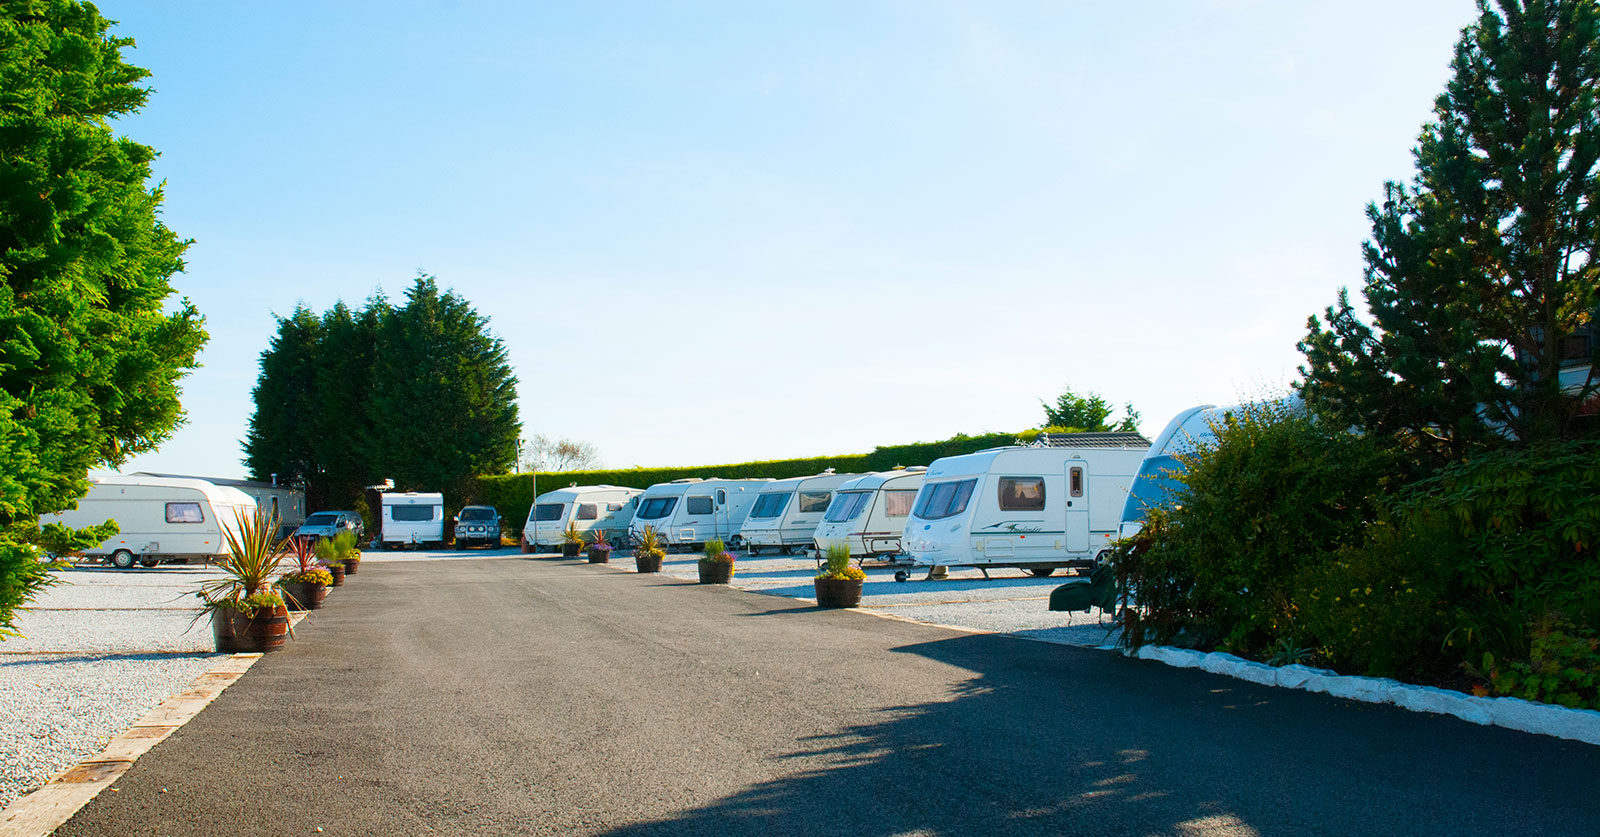 Red Deer Village Holiday Park touring caravan and motorhome pitches